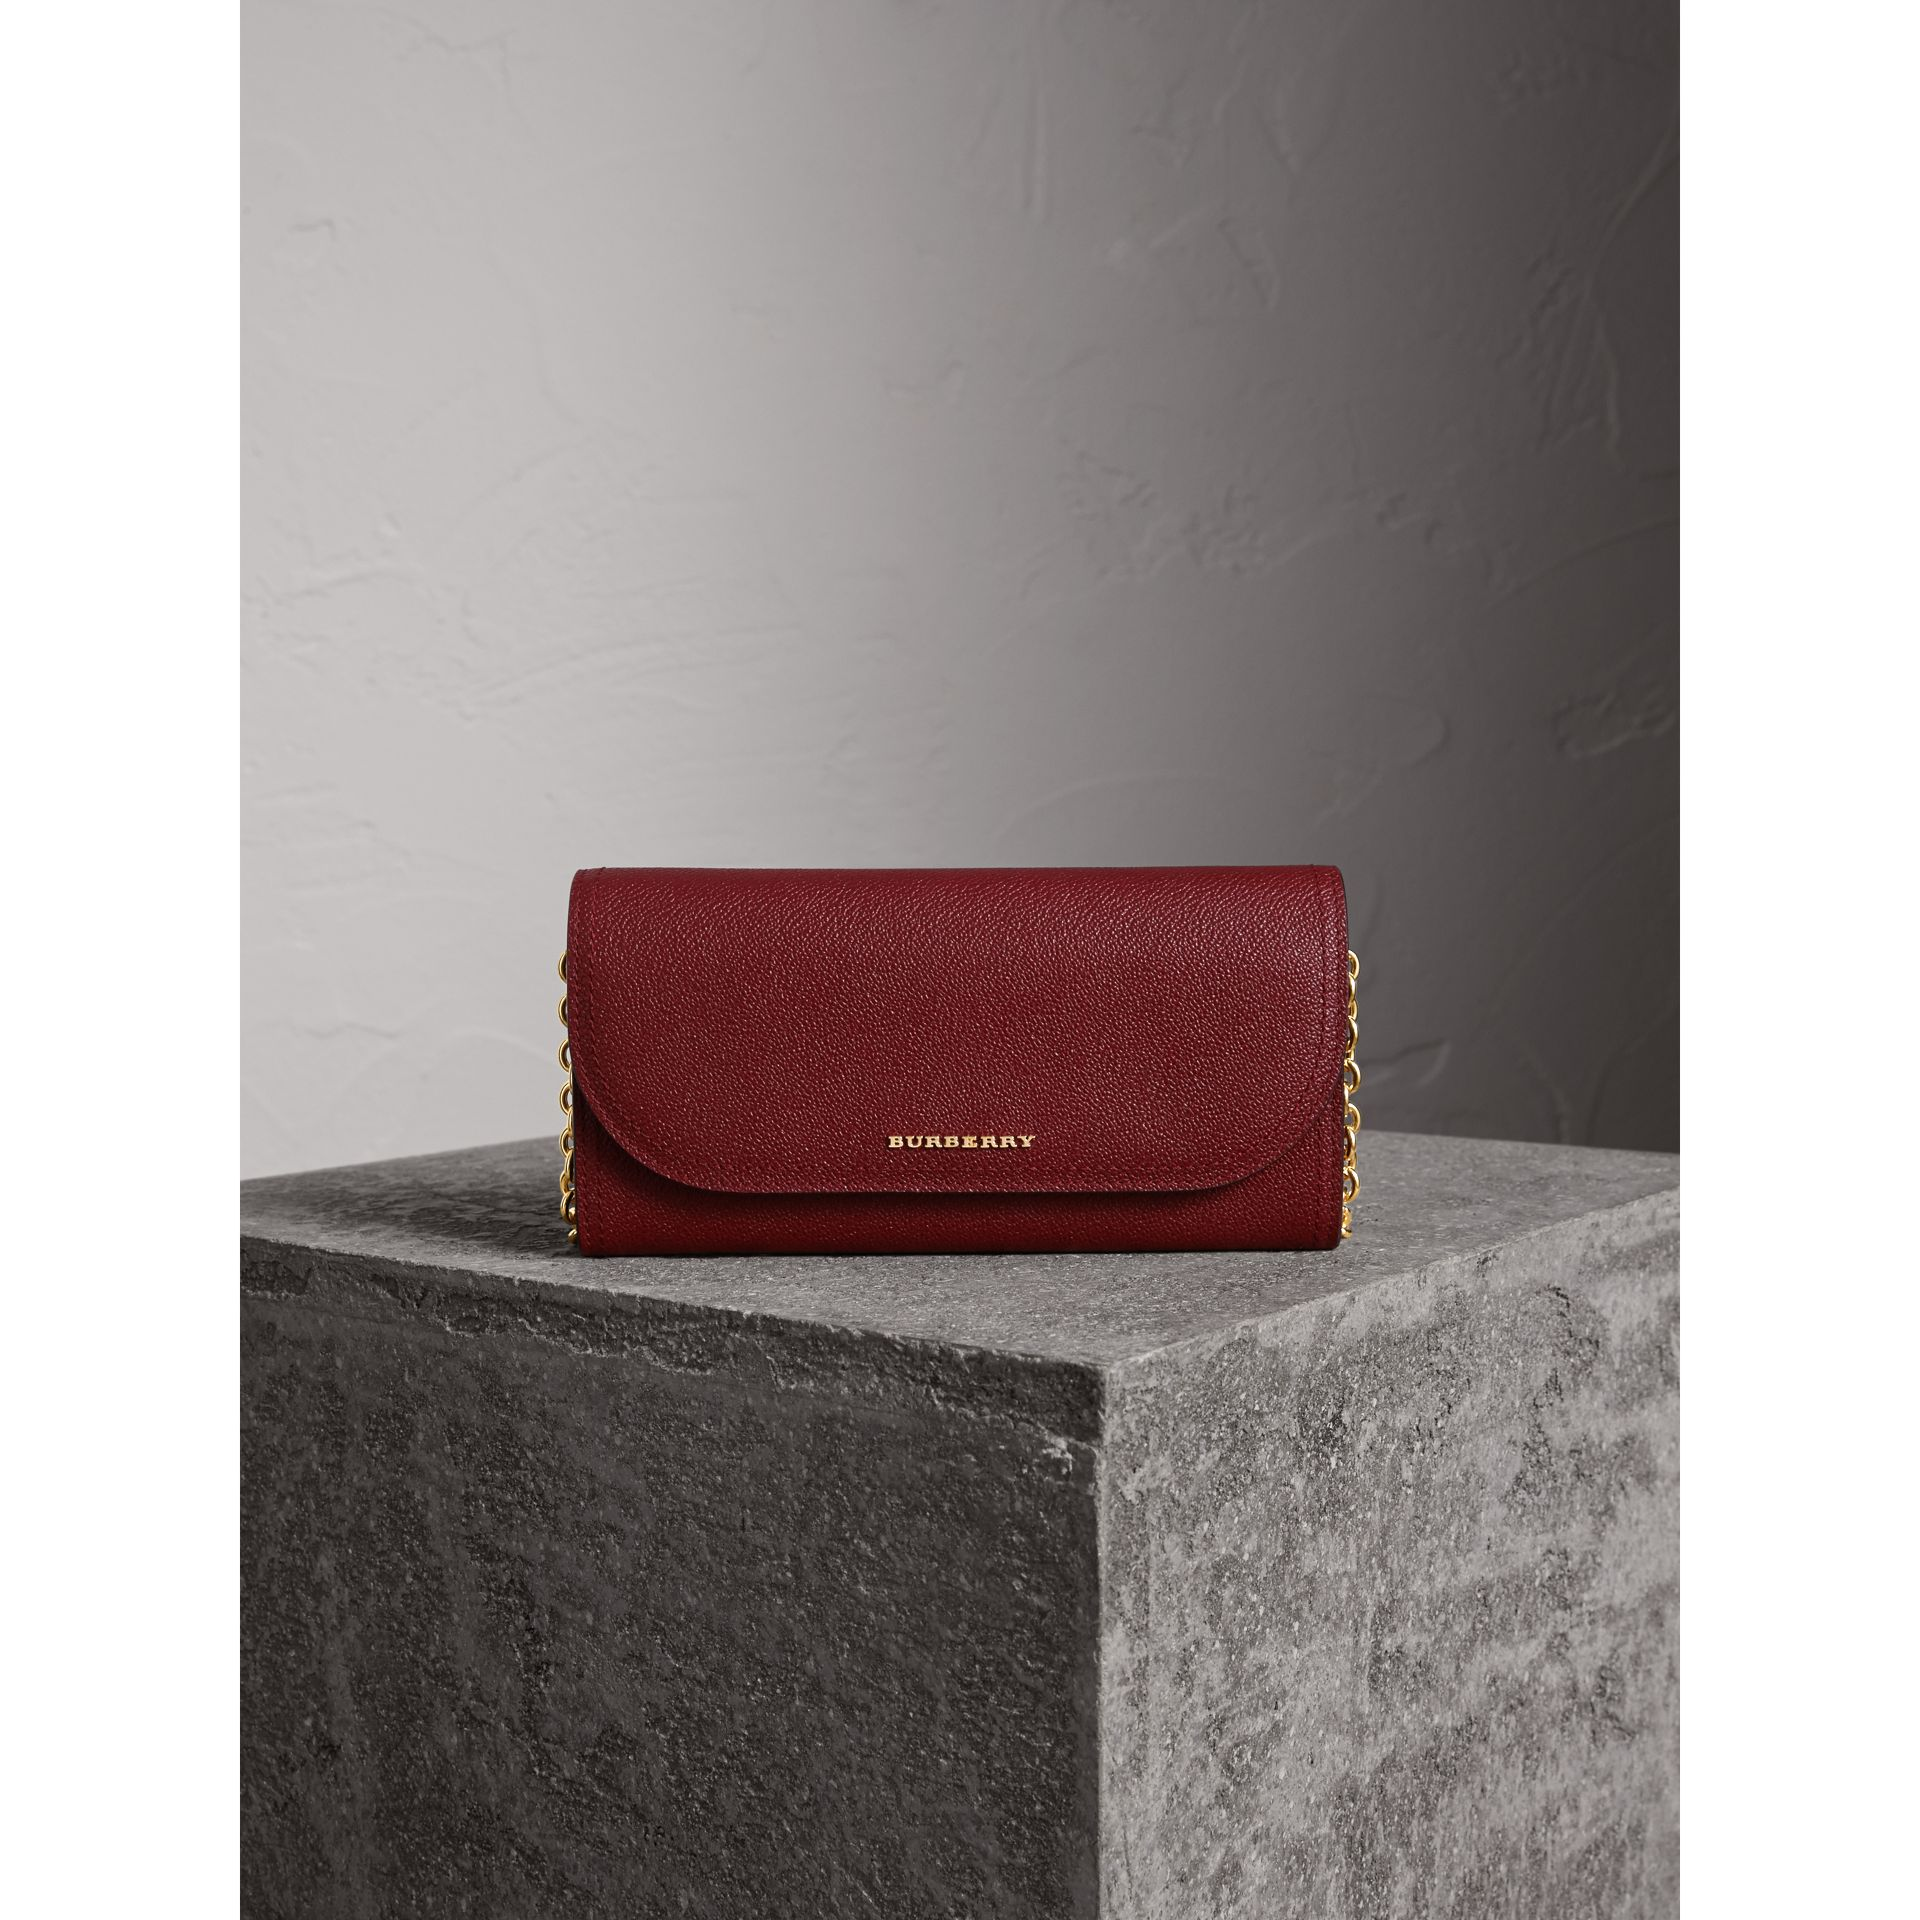 Leather Wallet with Chain in Burgundy - Women | Burberry Hong Kong - gallery image 3